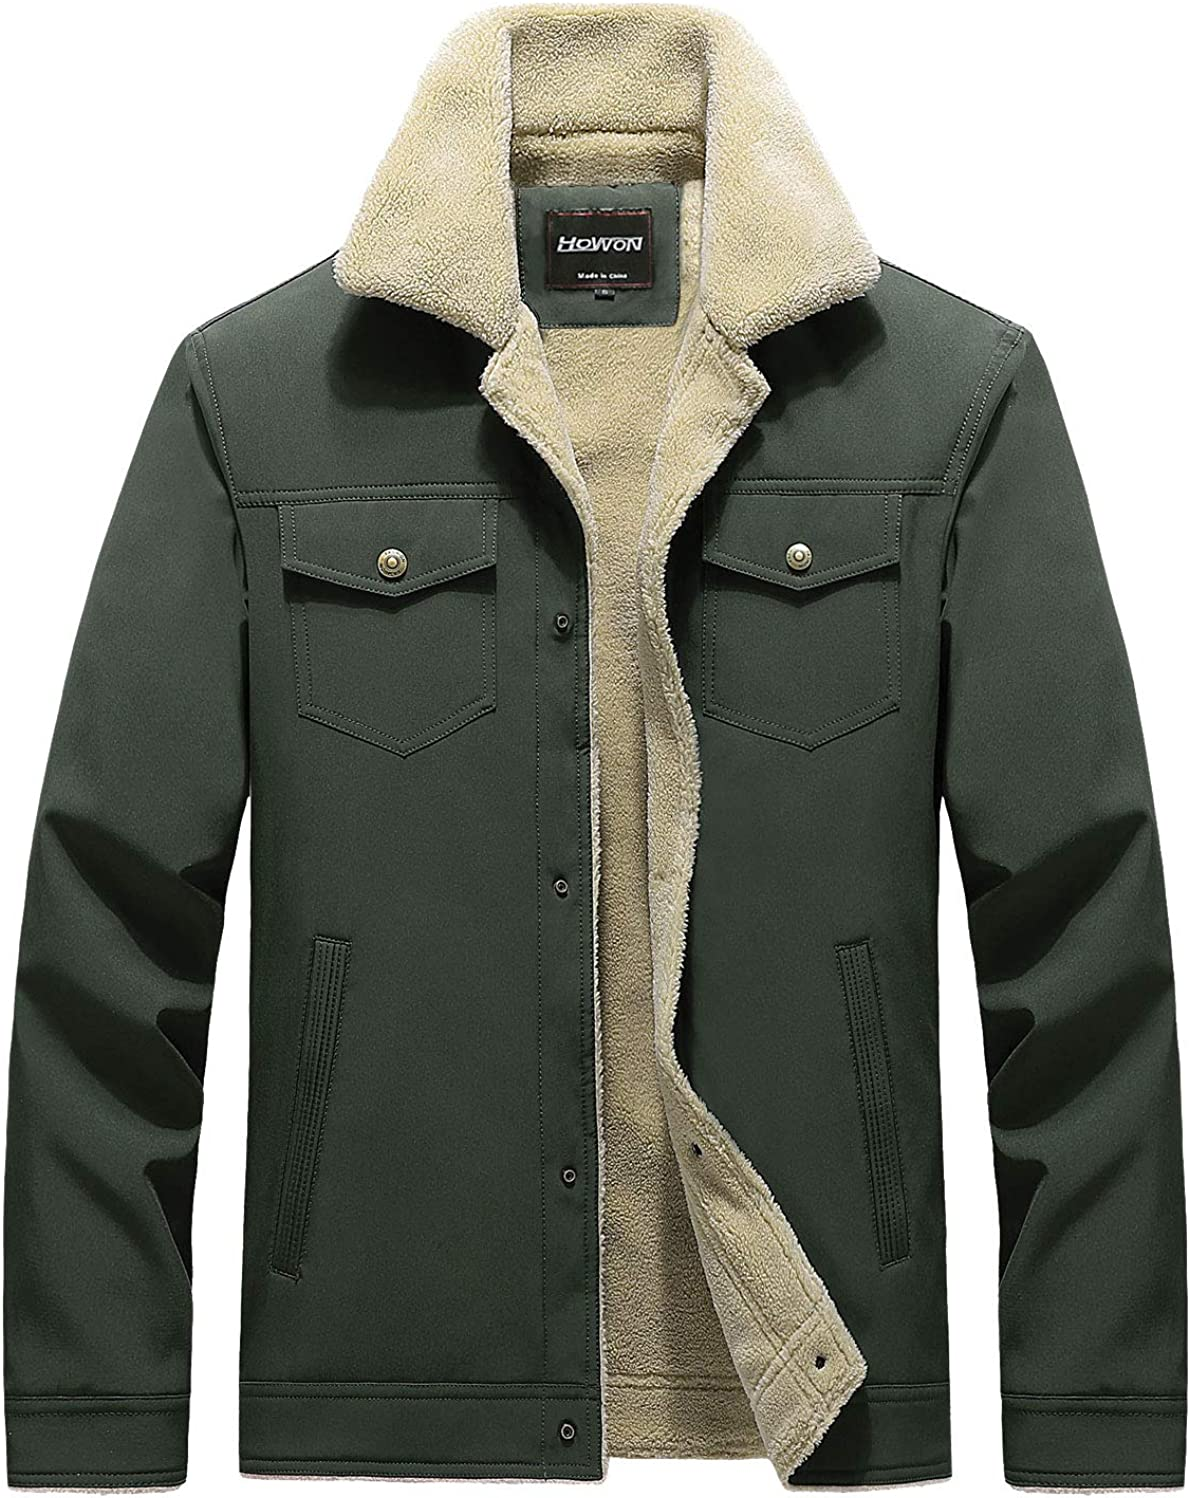 HOW'ON Men's Casual Sherpa Fleece Lined 70% OFF Outlet Fu Warm Store With Jacket Coat